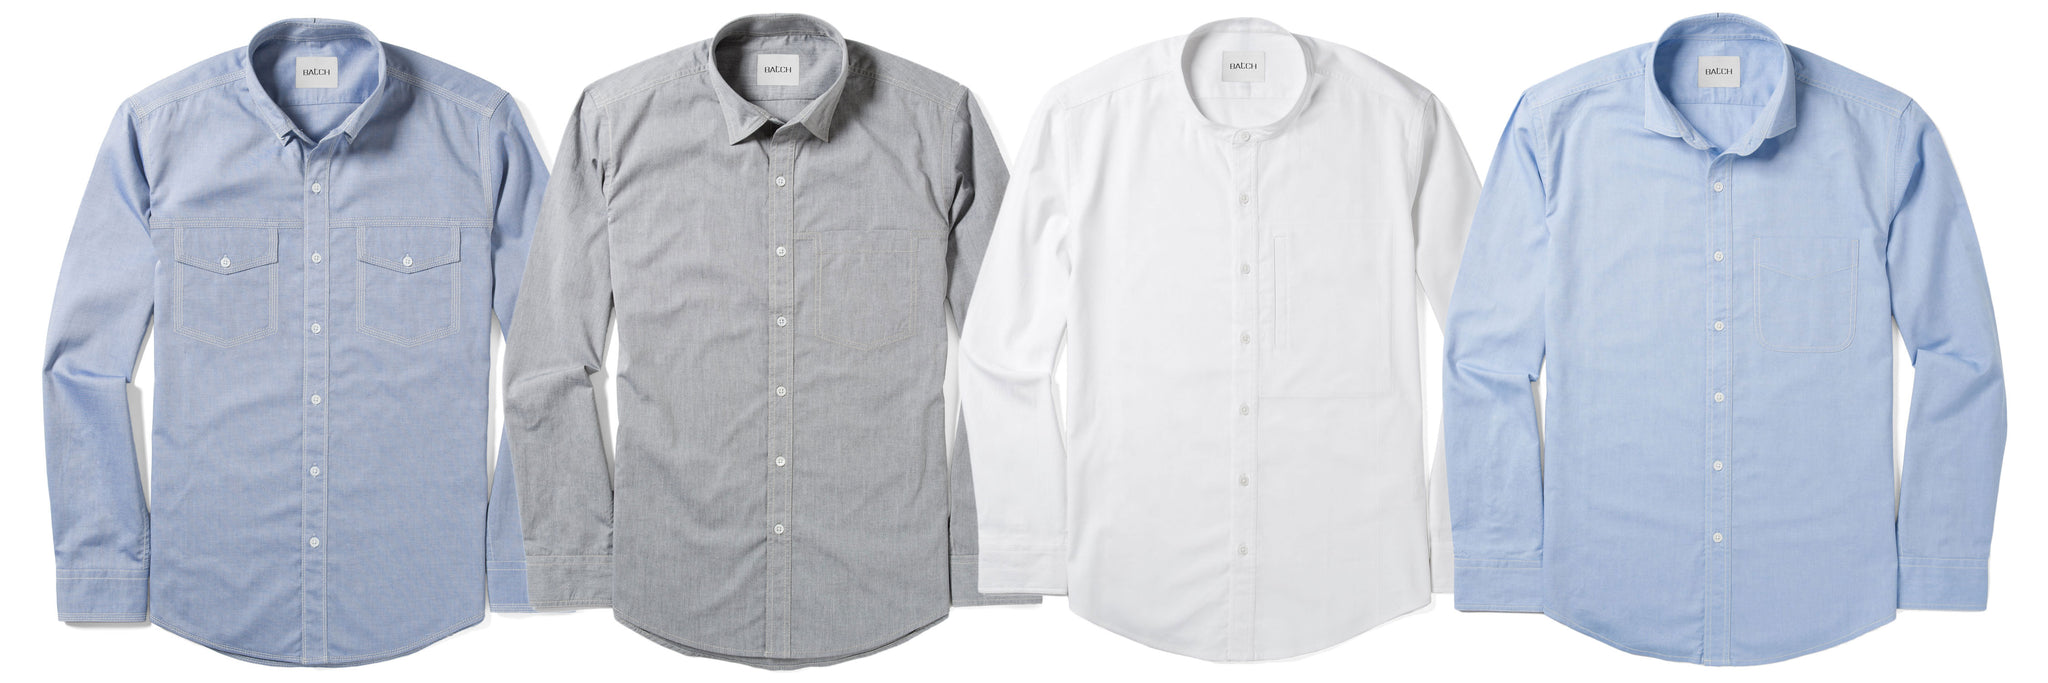 Types of Dress Shirts for Men from Casual to Formal